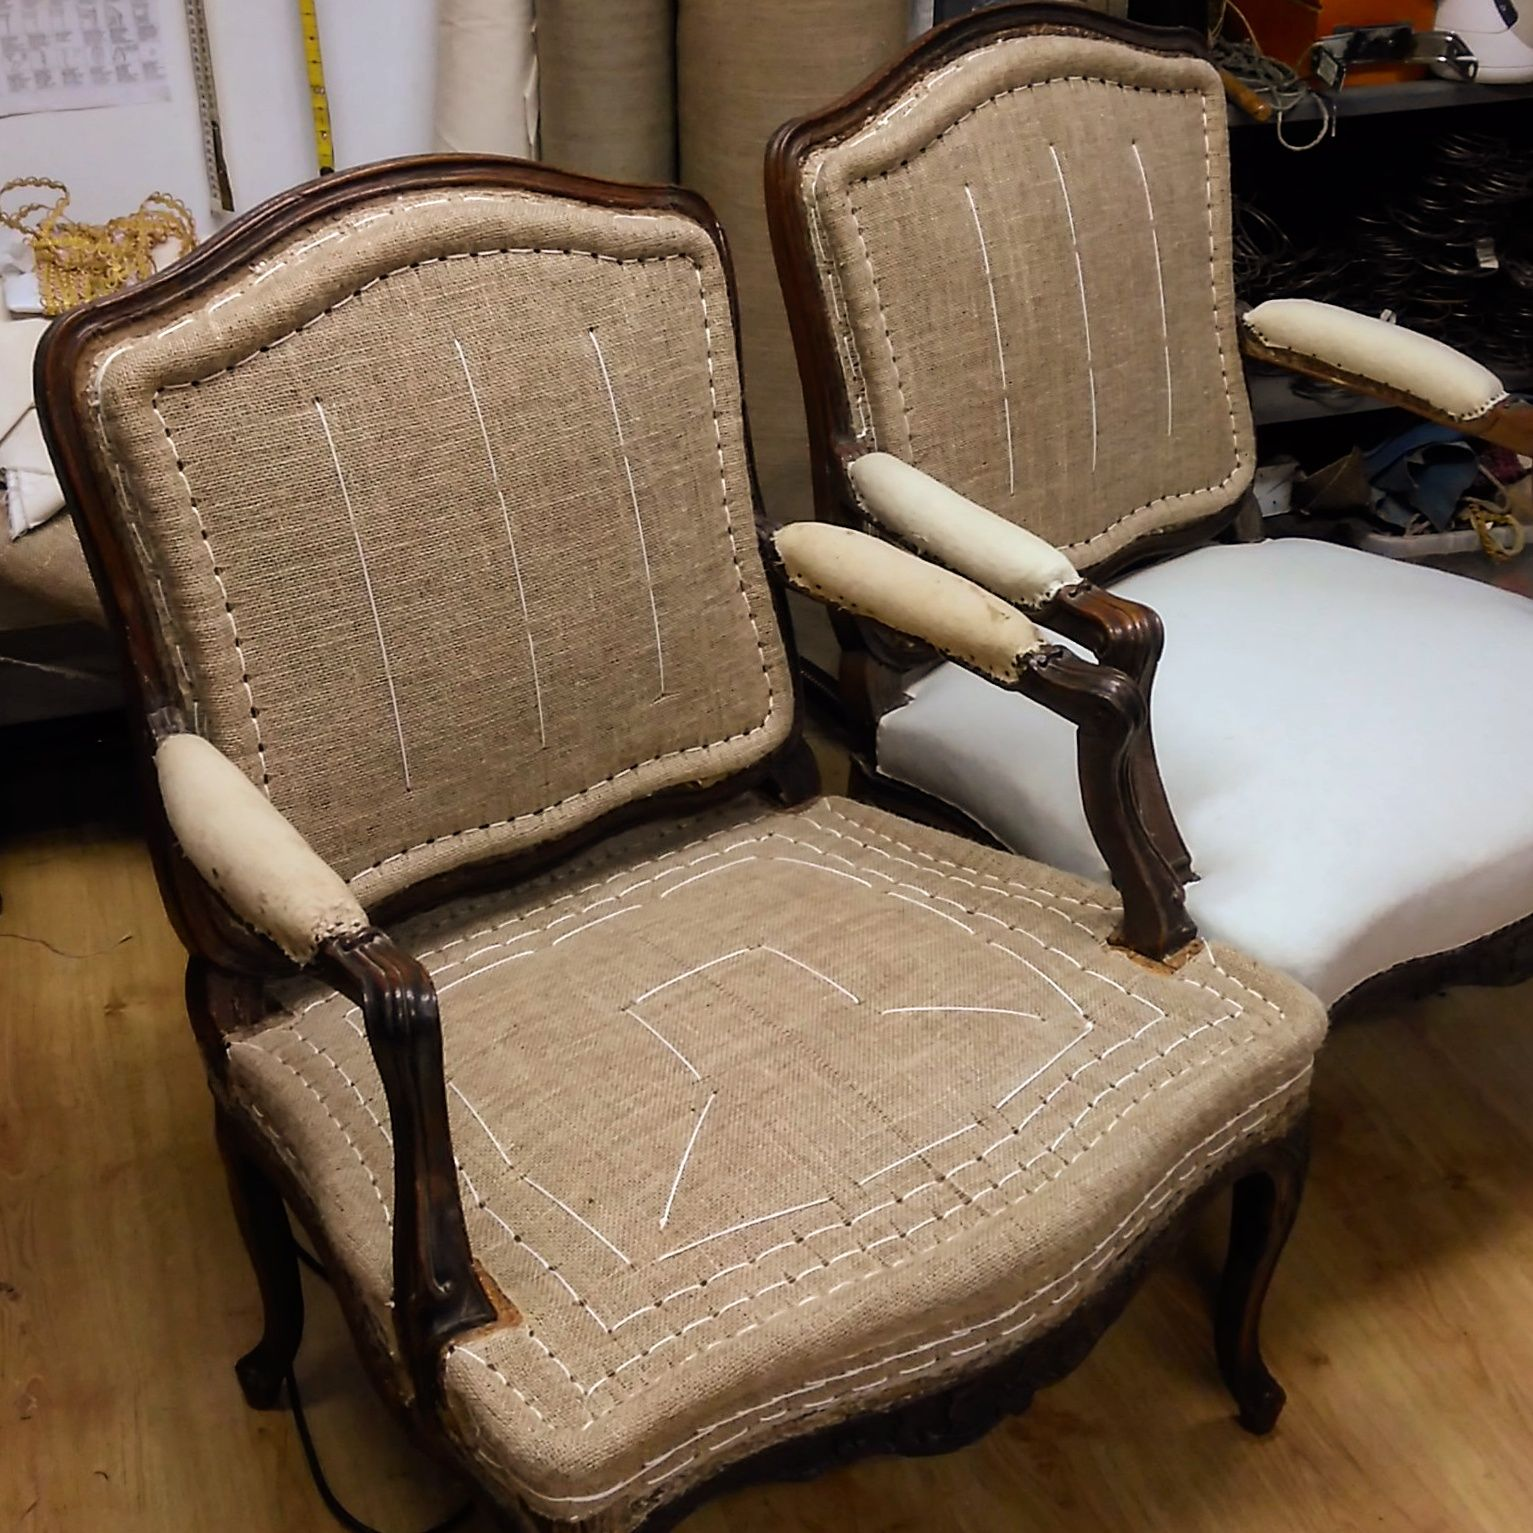 French Stitching On Fauteui A La Reine Louis Xv Style Upholstered Chairs Fabric Upholstery Reupholster Furniture